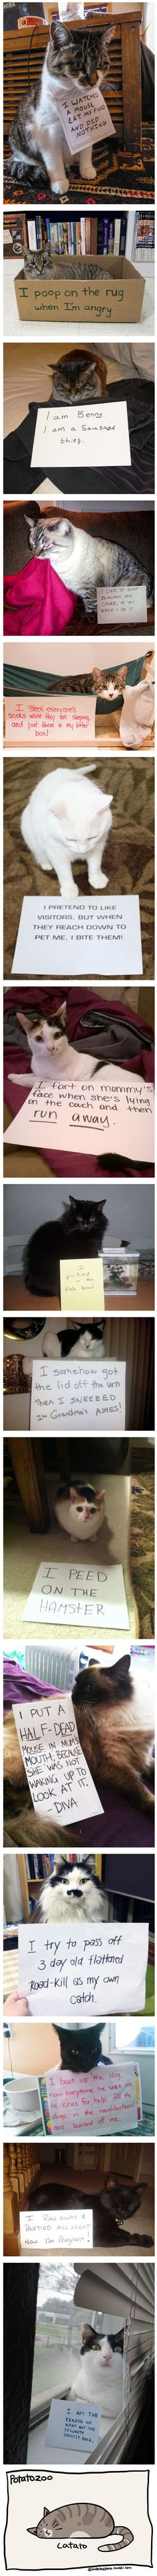 Guilty Cats That Are NOT Sorry